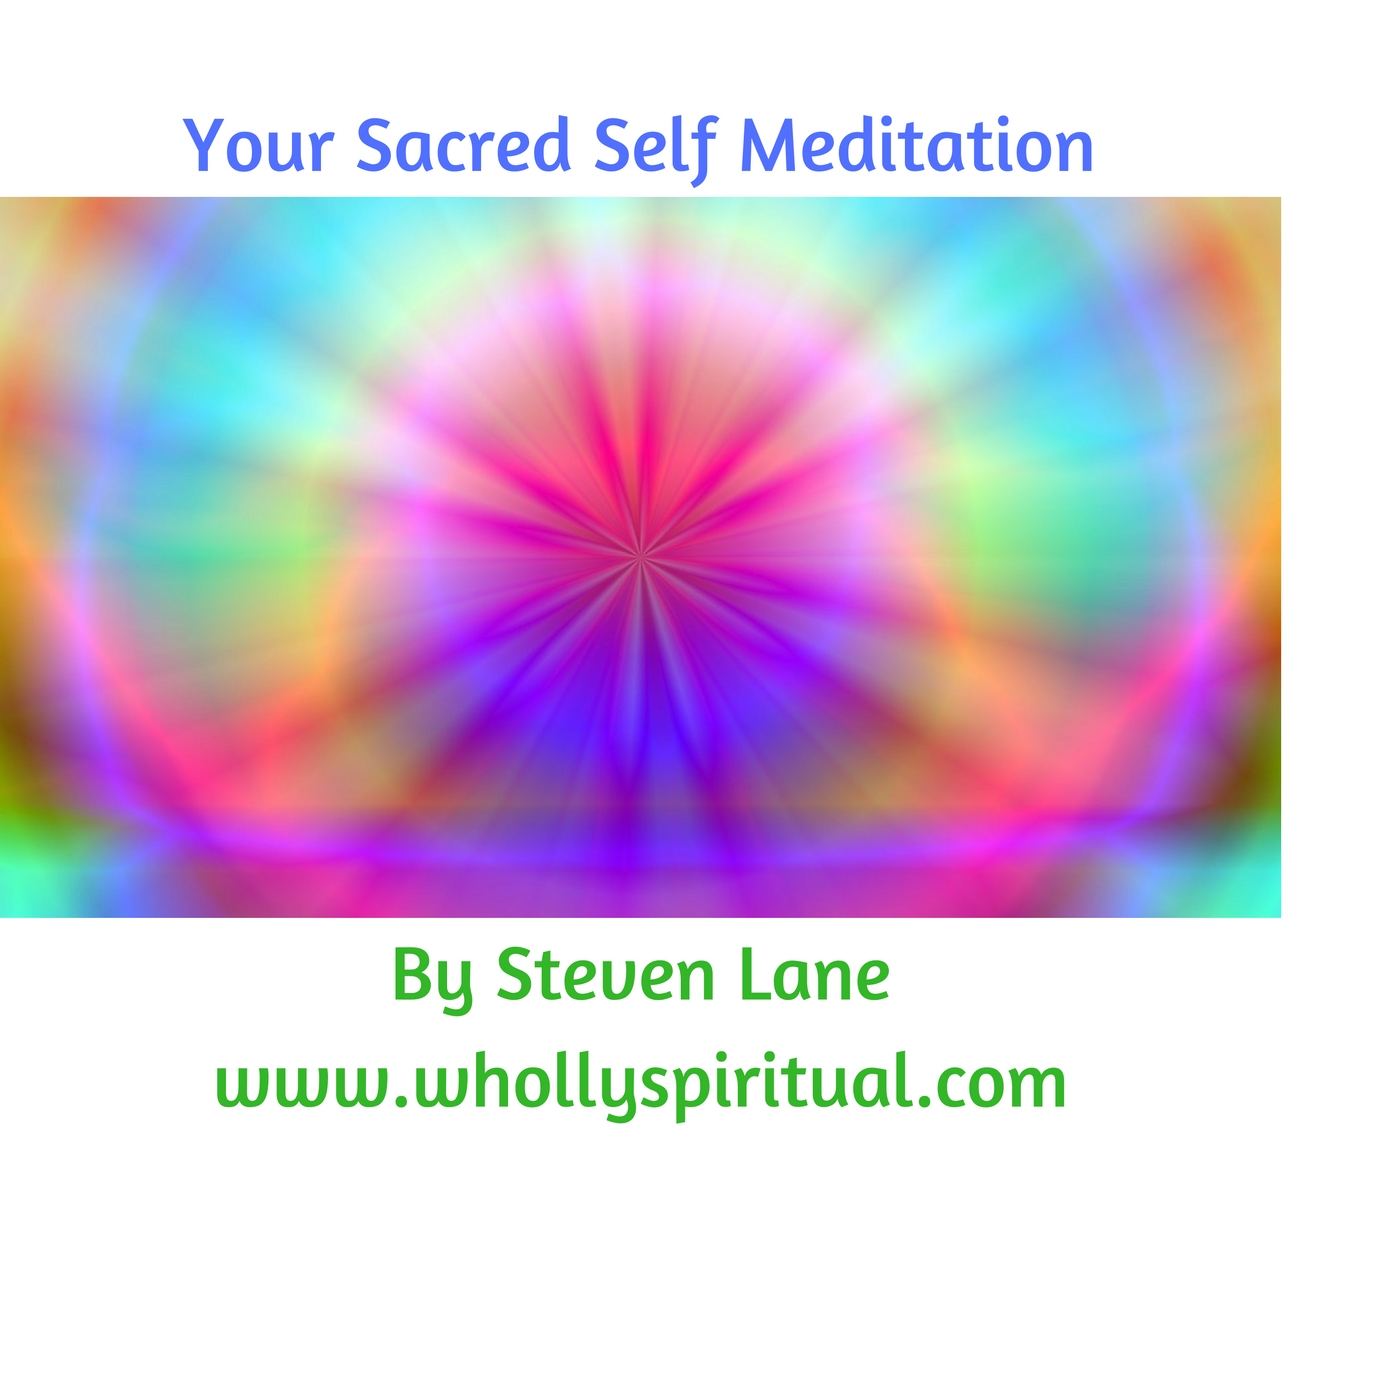 FREE Sacred Self Meditation Audio Download Image